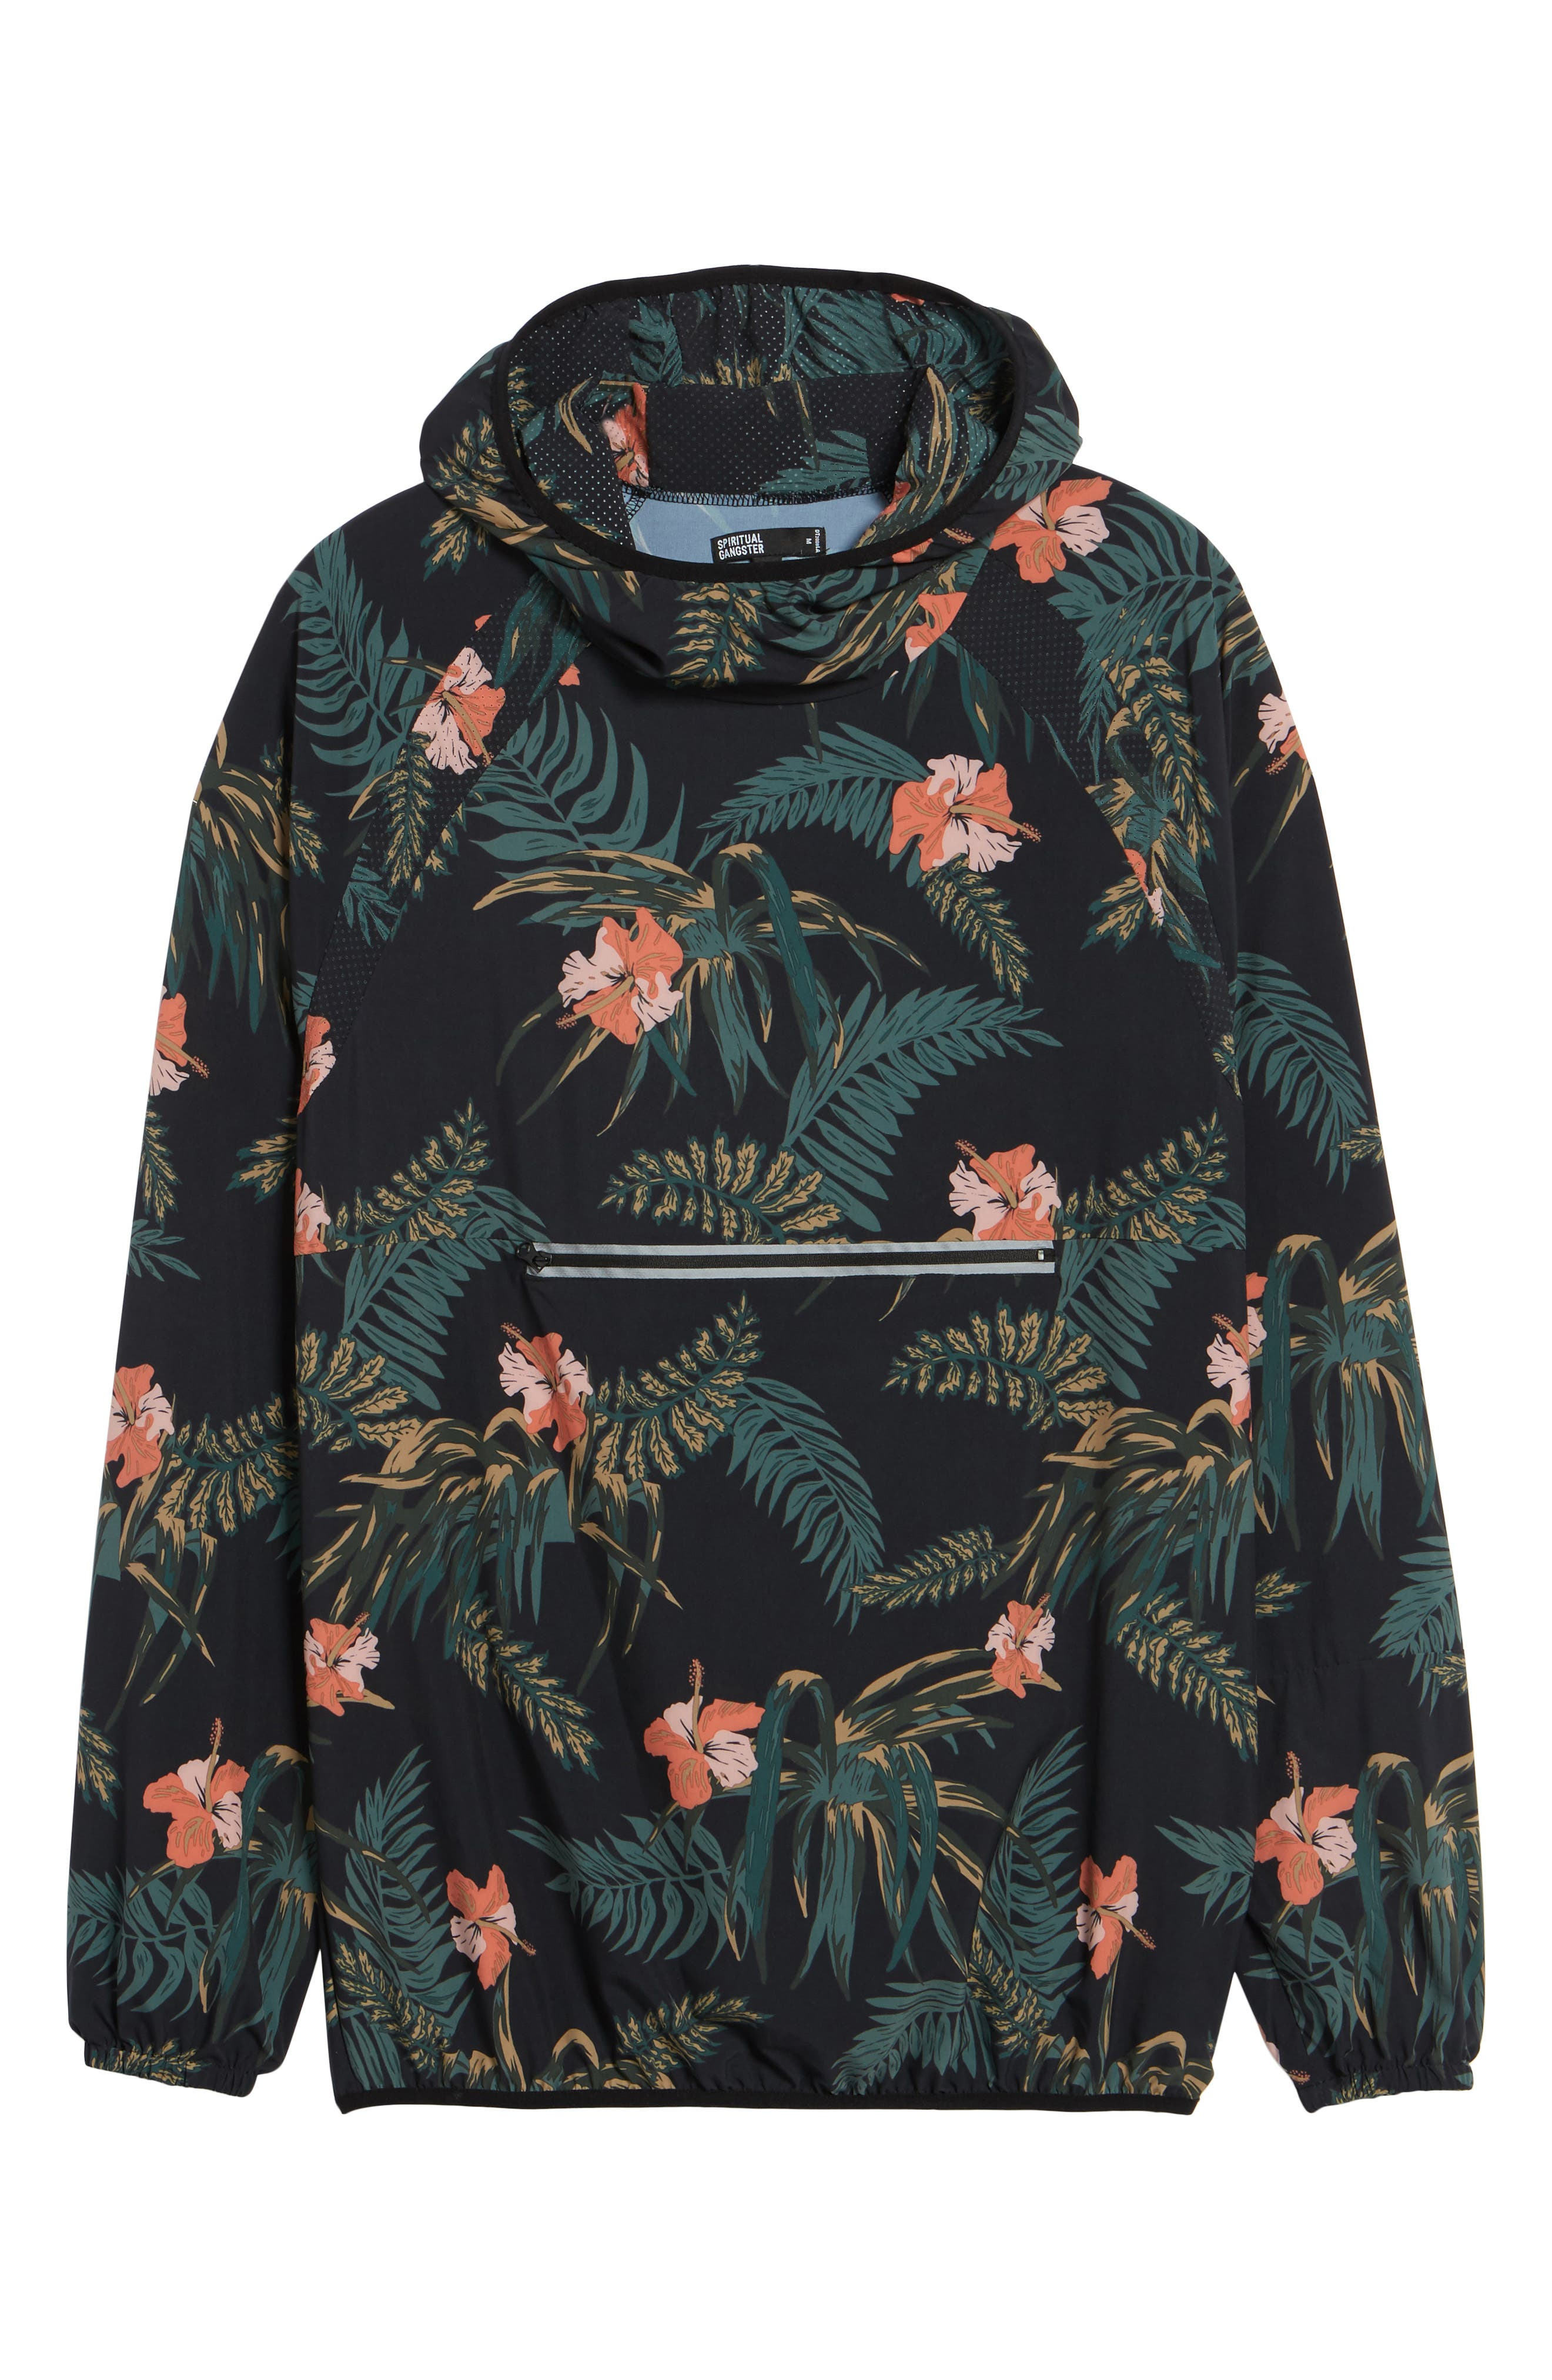 Ignite Pullover,                             Alternate thumbnail 6, color,                             Floral/ Multi